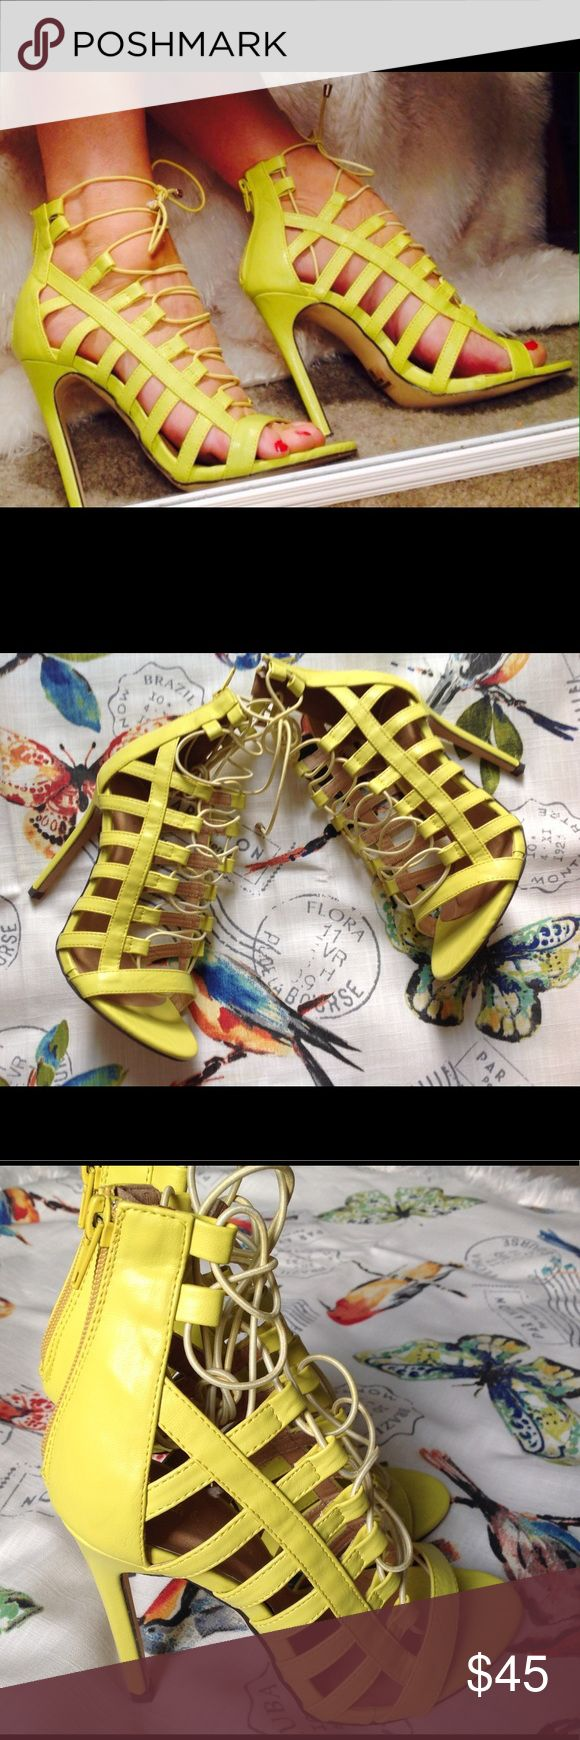 LUSCIOUS LEMON LACE UP HEELS! A BESTSELLER LAST PR Think lemon sherbet! Yummy yellow 4 1/2 inch heel, vegan (man-made) strappy corset heels. Brand new in box. Never worn. Fabulous with black and white romper in my closet. Be a global chic fashionista! Only pair in this color.🍋🍋🍋🍋 True to size. Mark & Maddux Shoes Heels